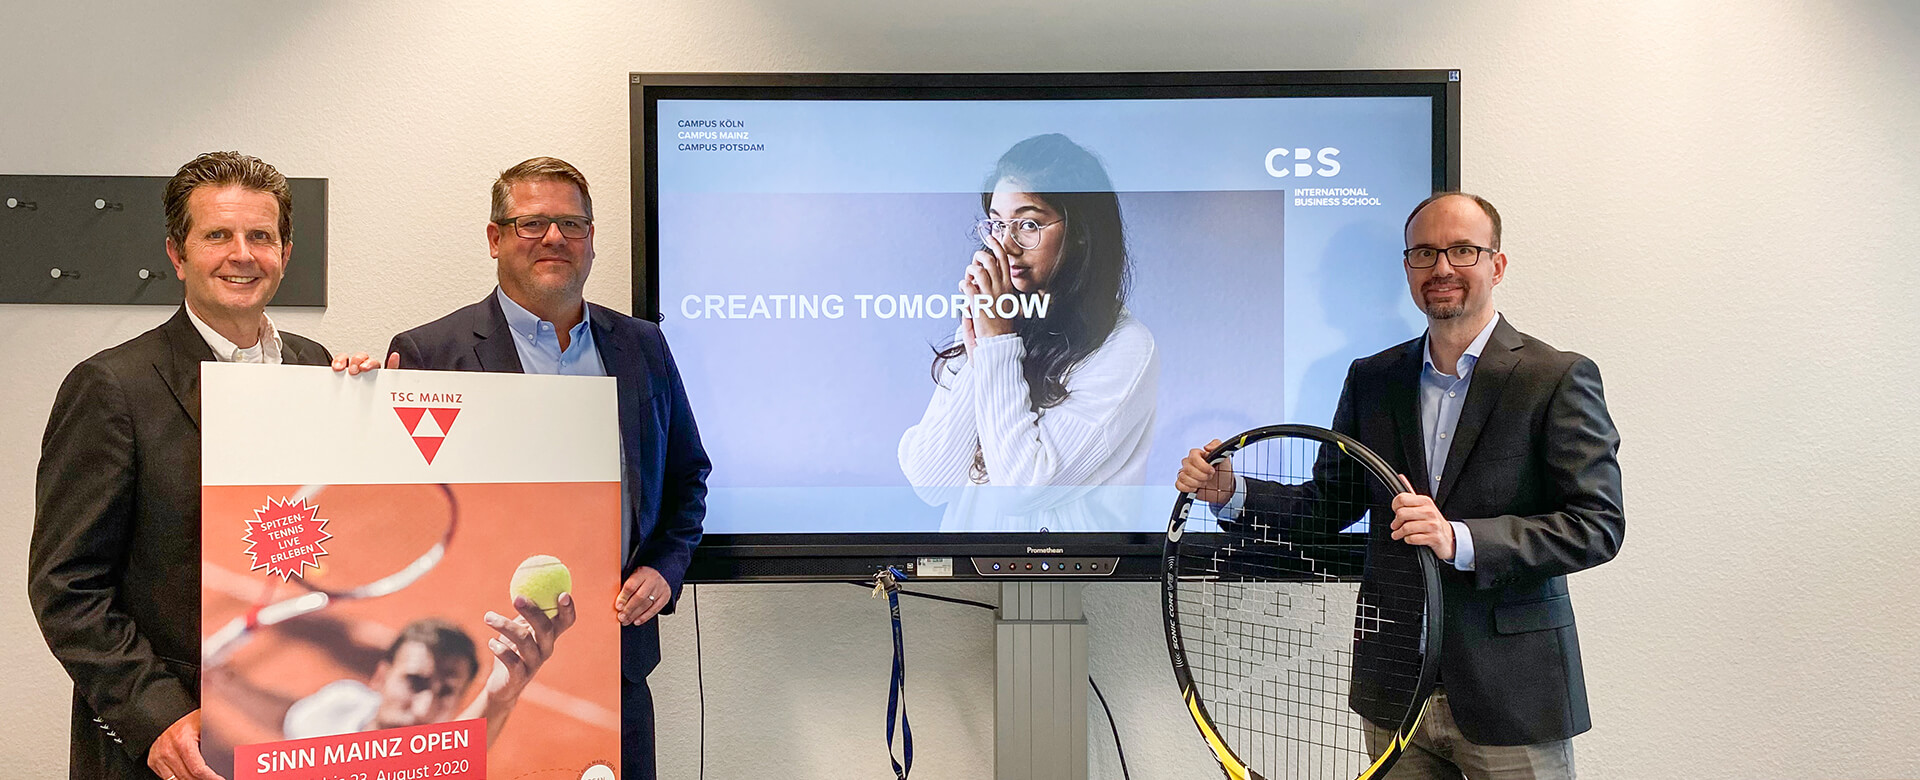 Tennis-Sportstipendium an der CBS in Mainz